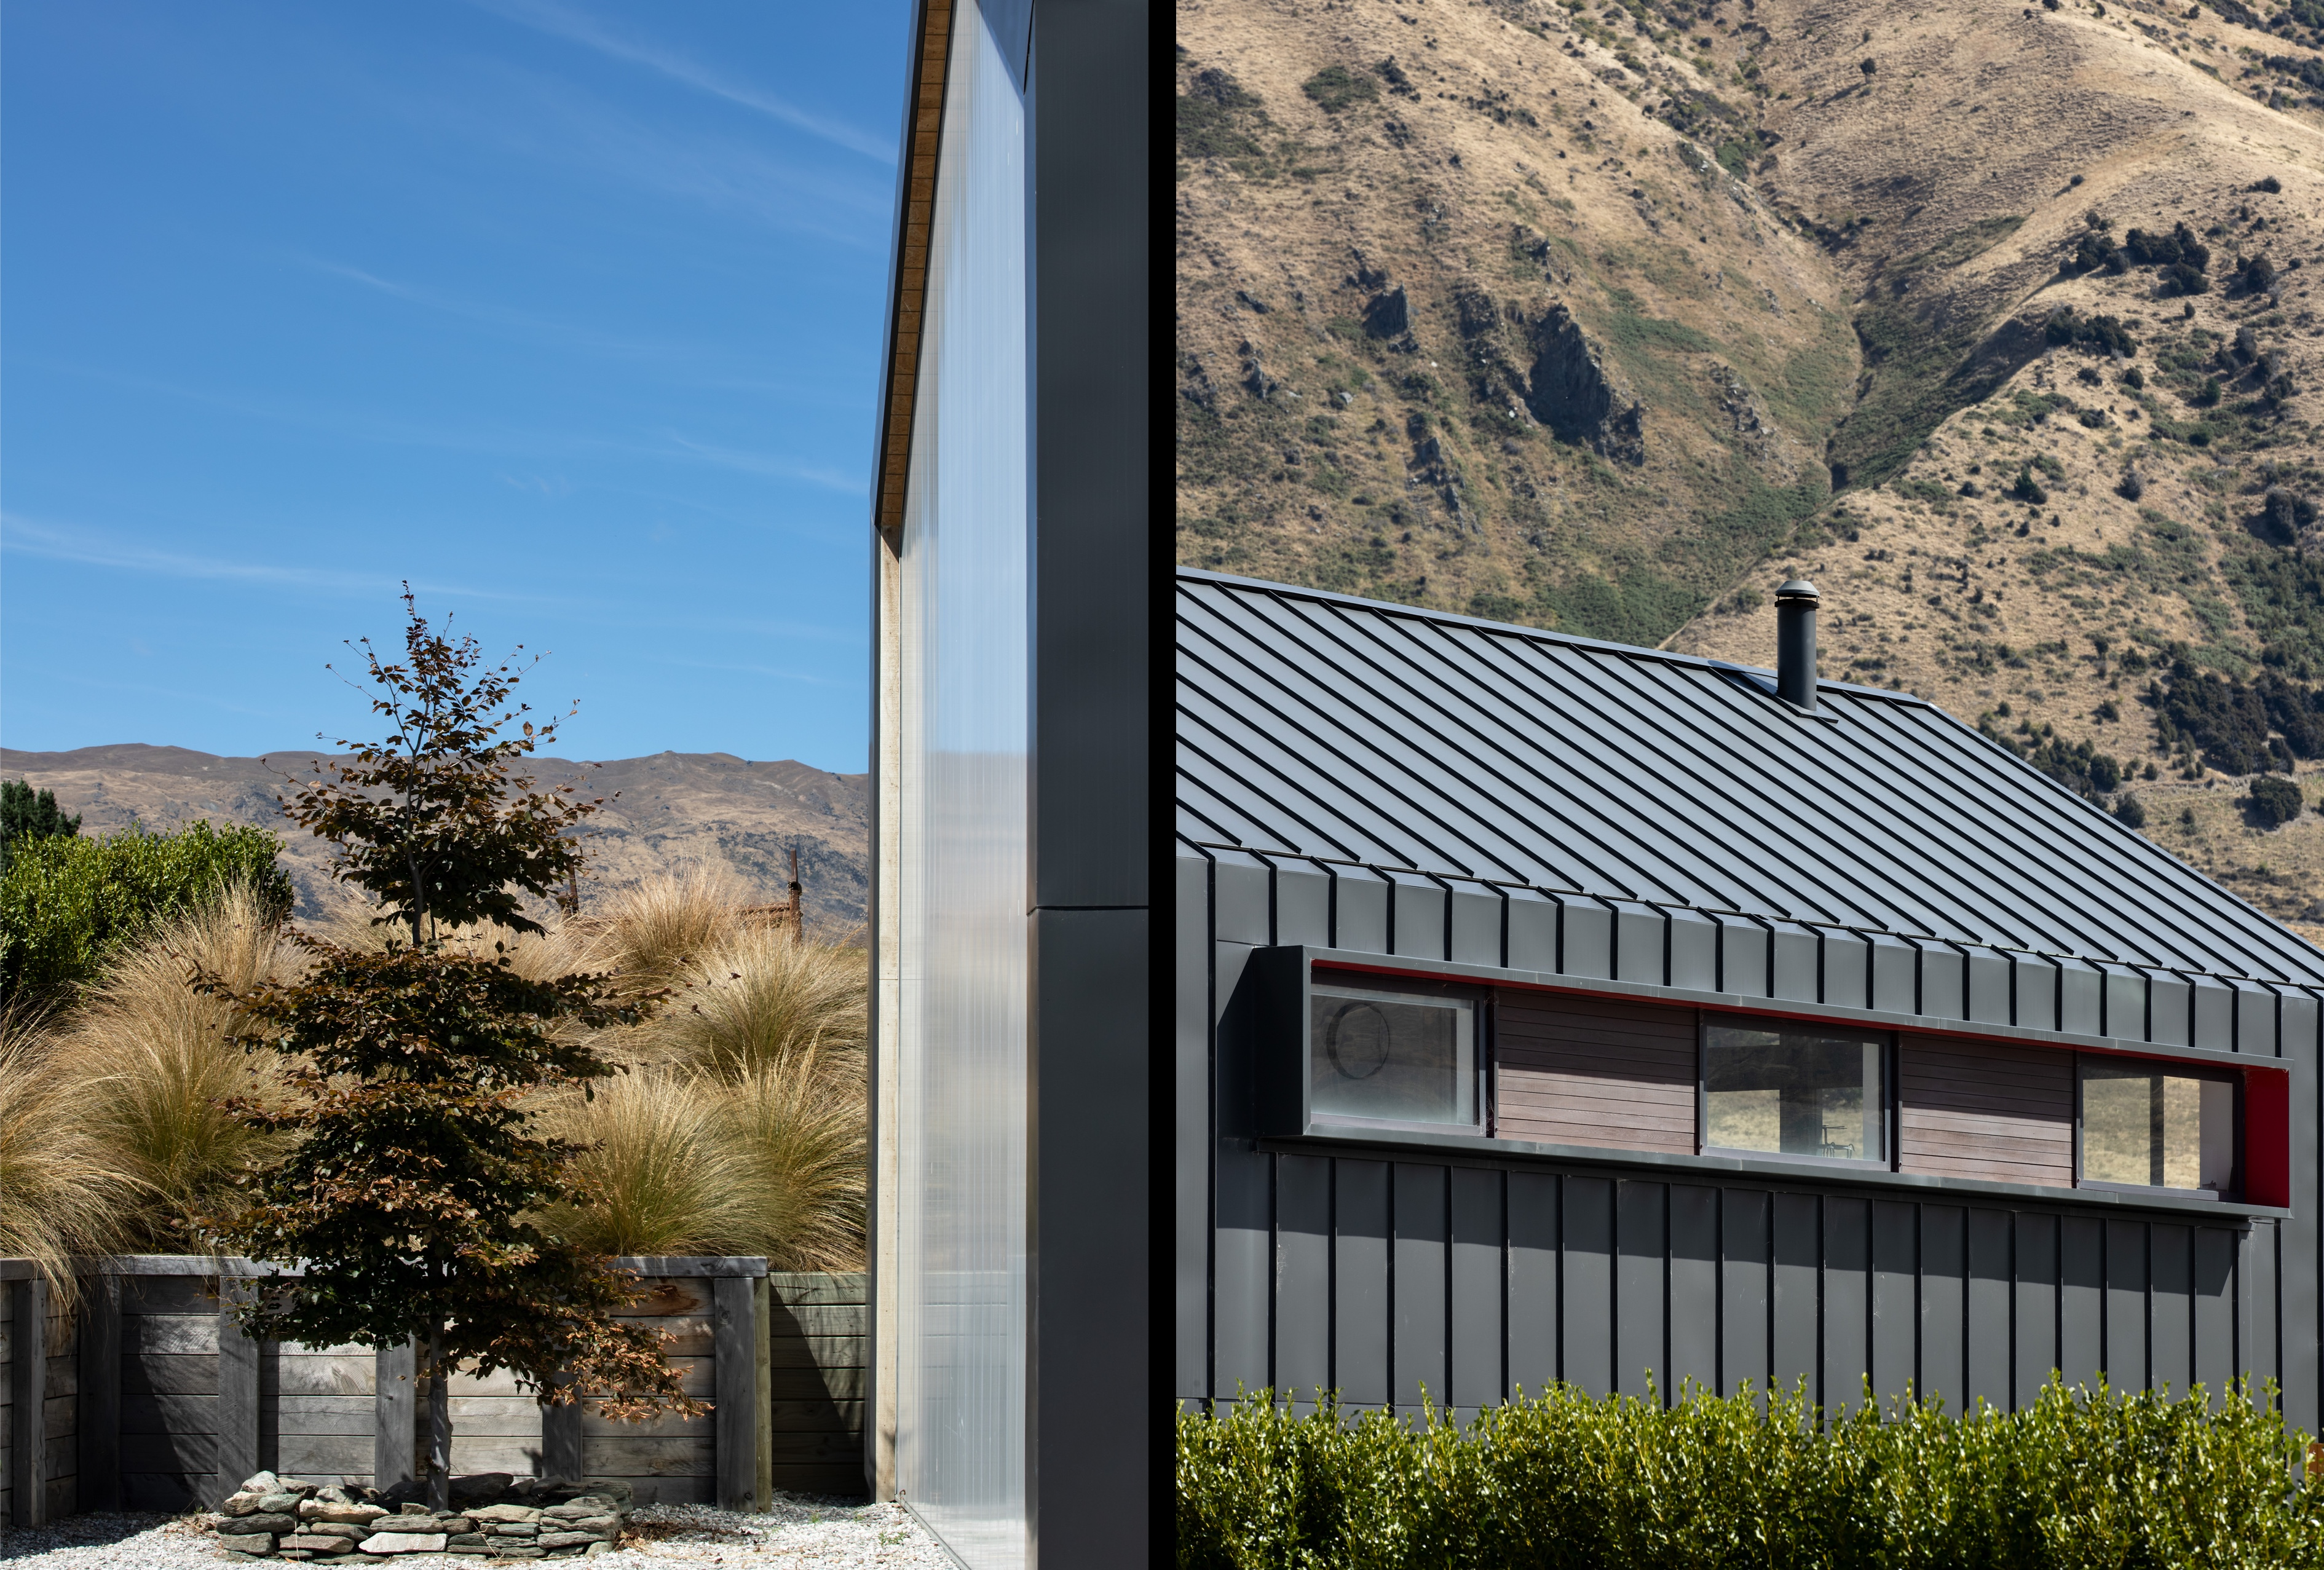 Split view with exterior on the left, depicting outdoor spaces and local flora; and the building's steel cladding on the right with hills in the background